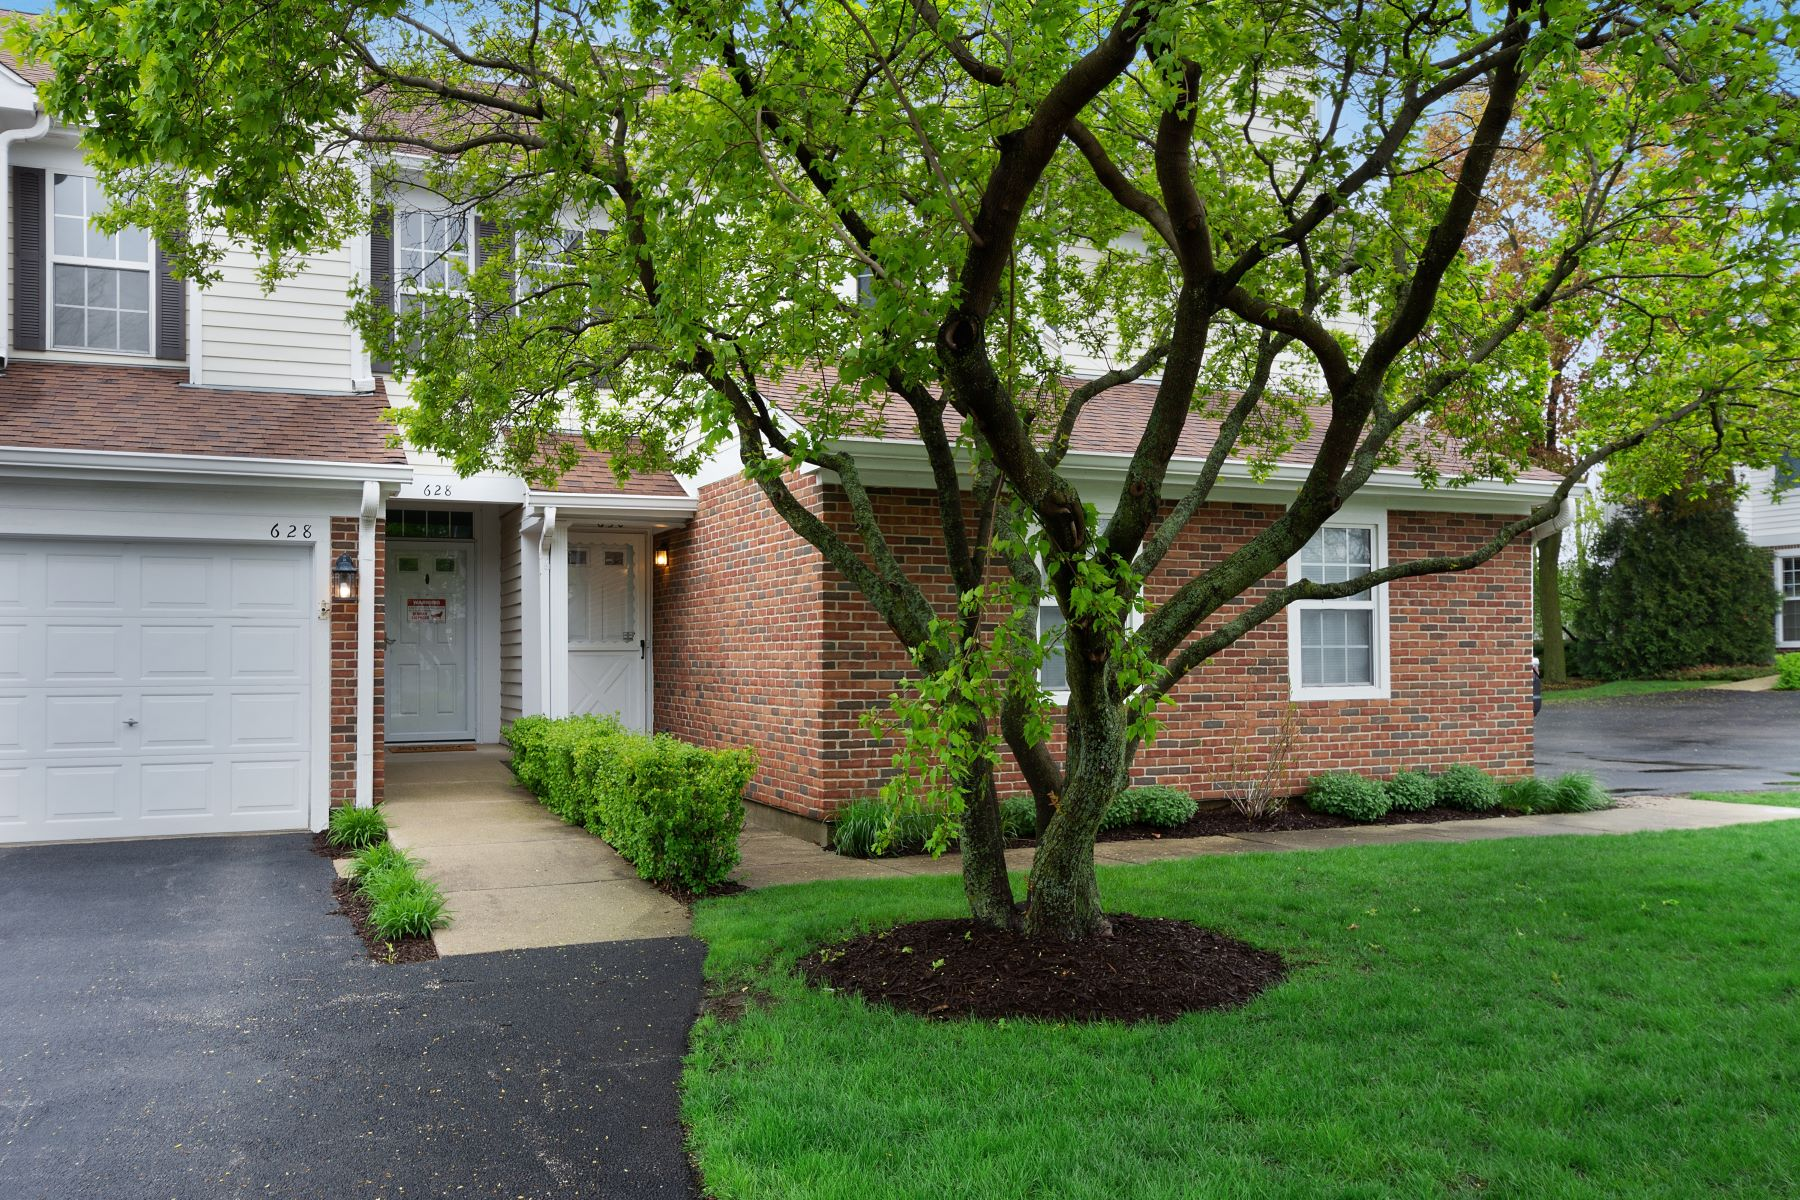 Single Family Home for Active at Wonderful Manor Home 630 Grosse Pointe Circle Vernon Hills, Illinois 60061 United States